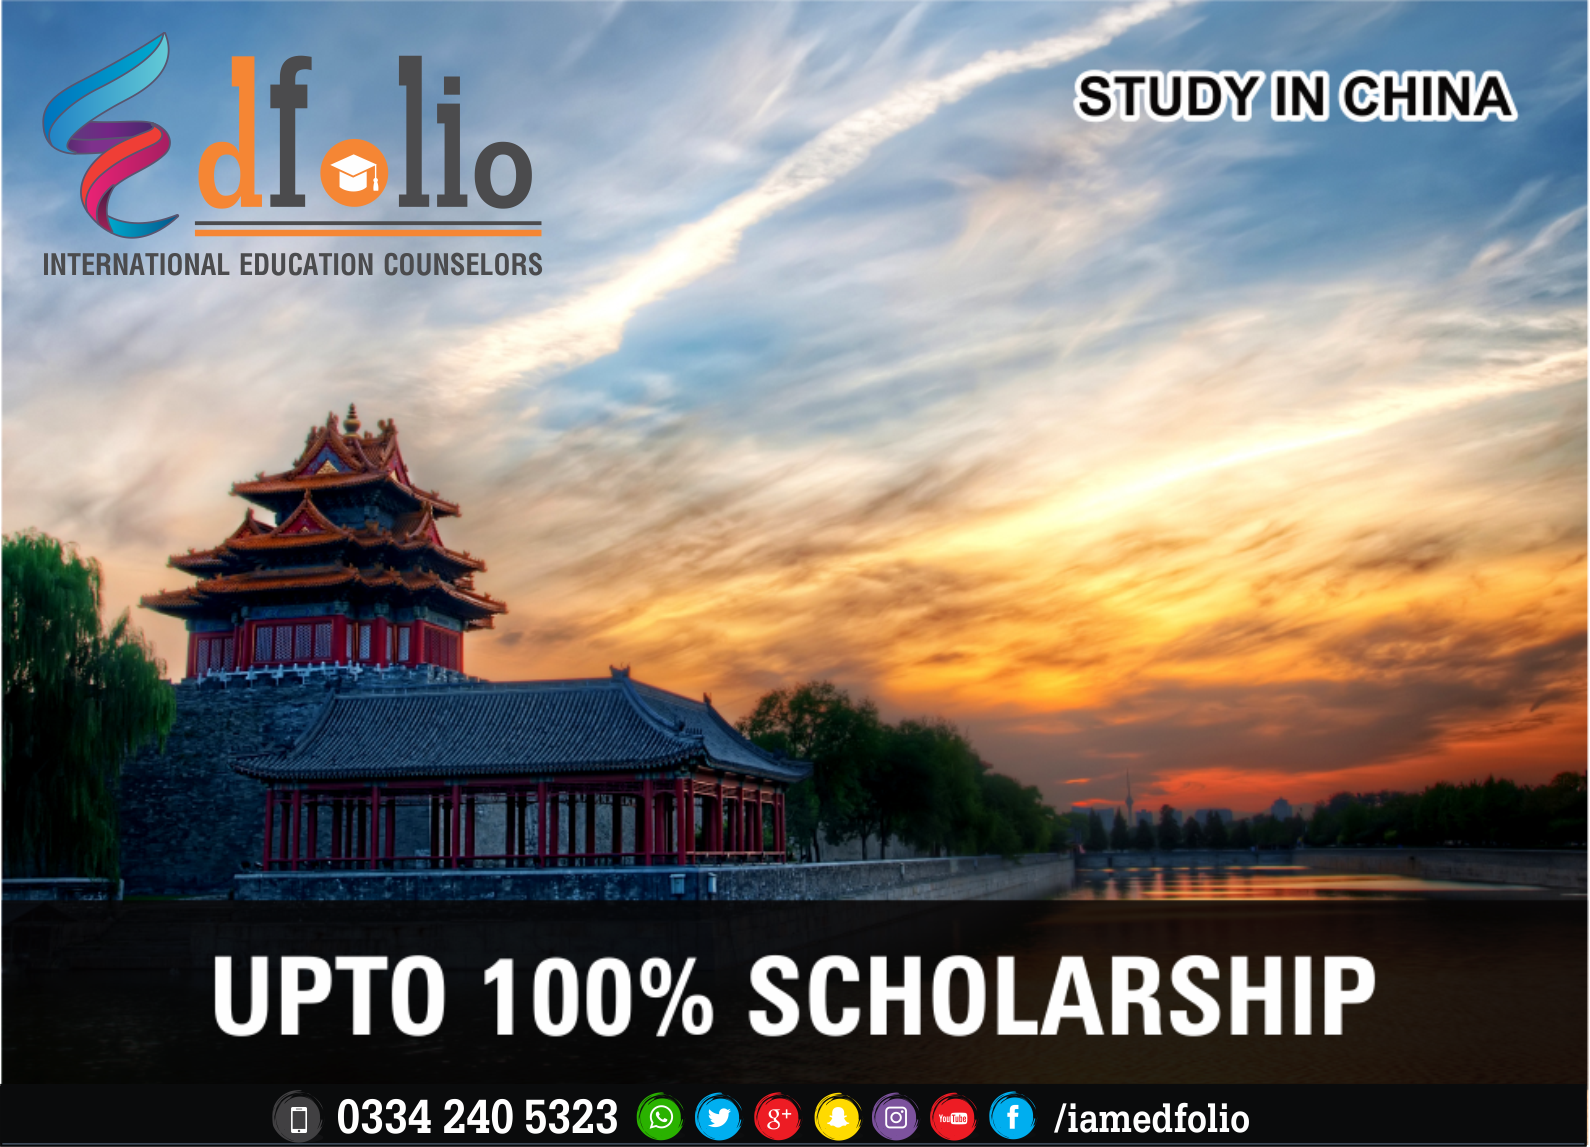 SCHOLARSHIPS IN CHINA - EdFolio International Education Consultant and Counselors